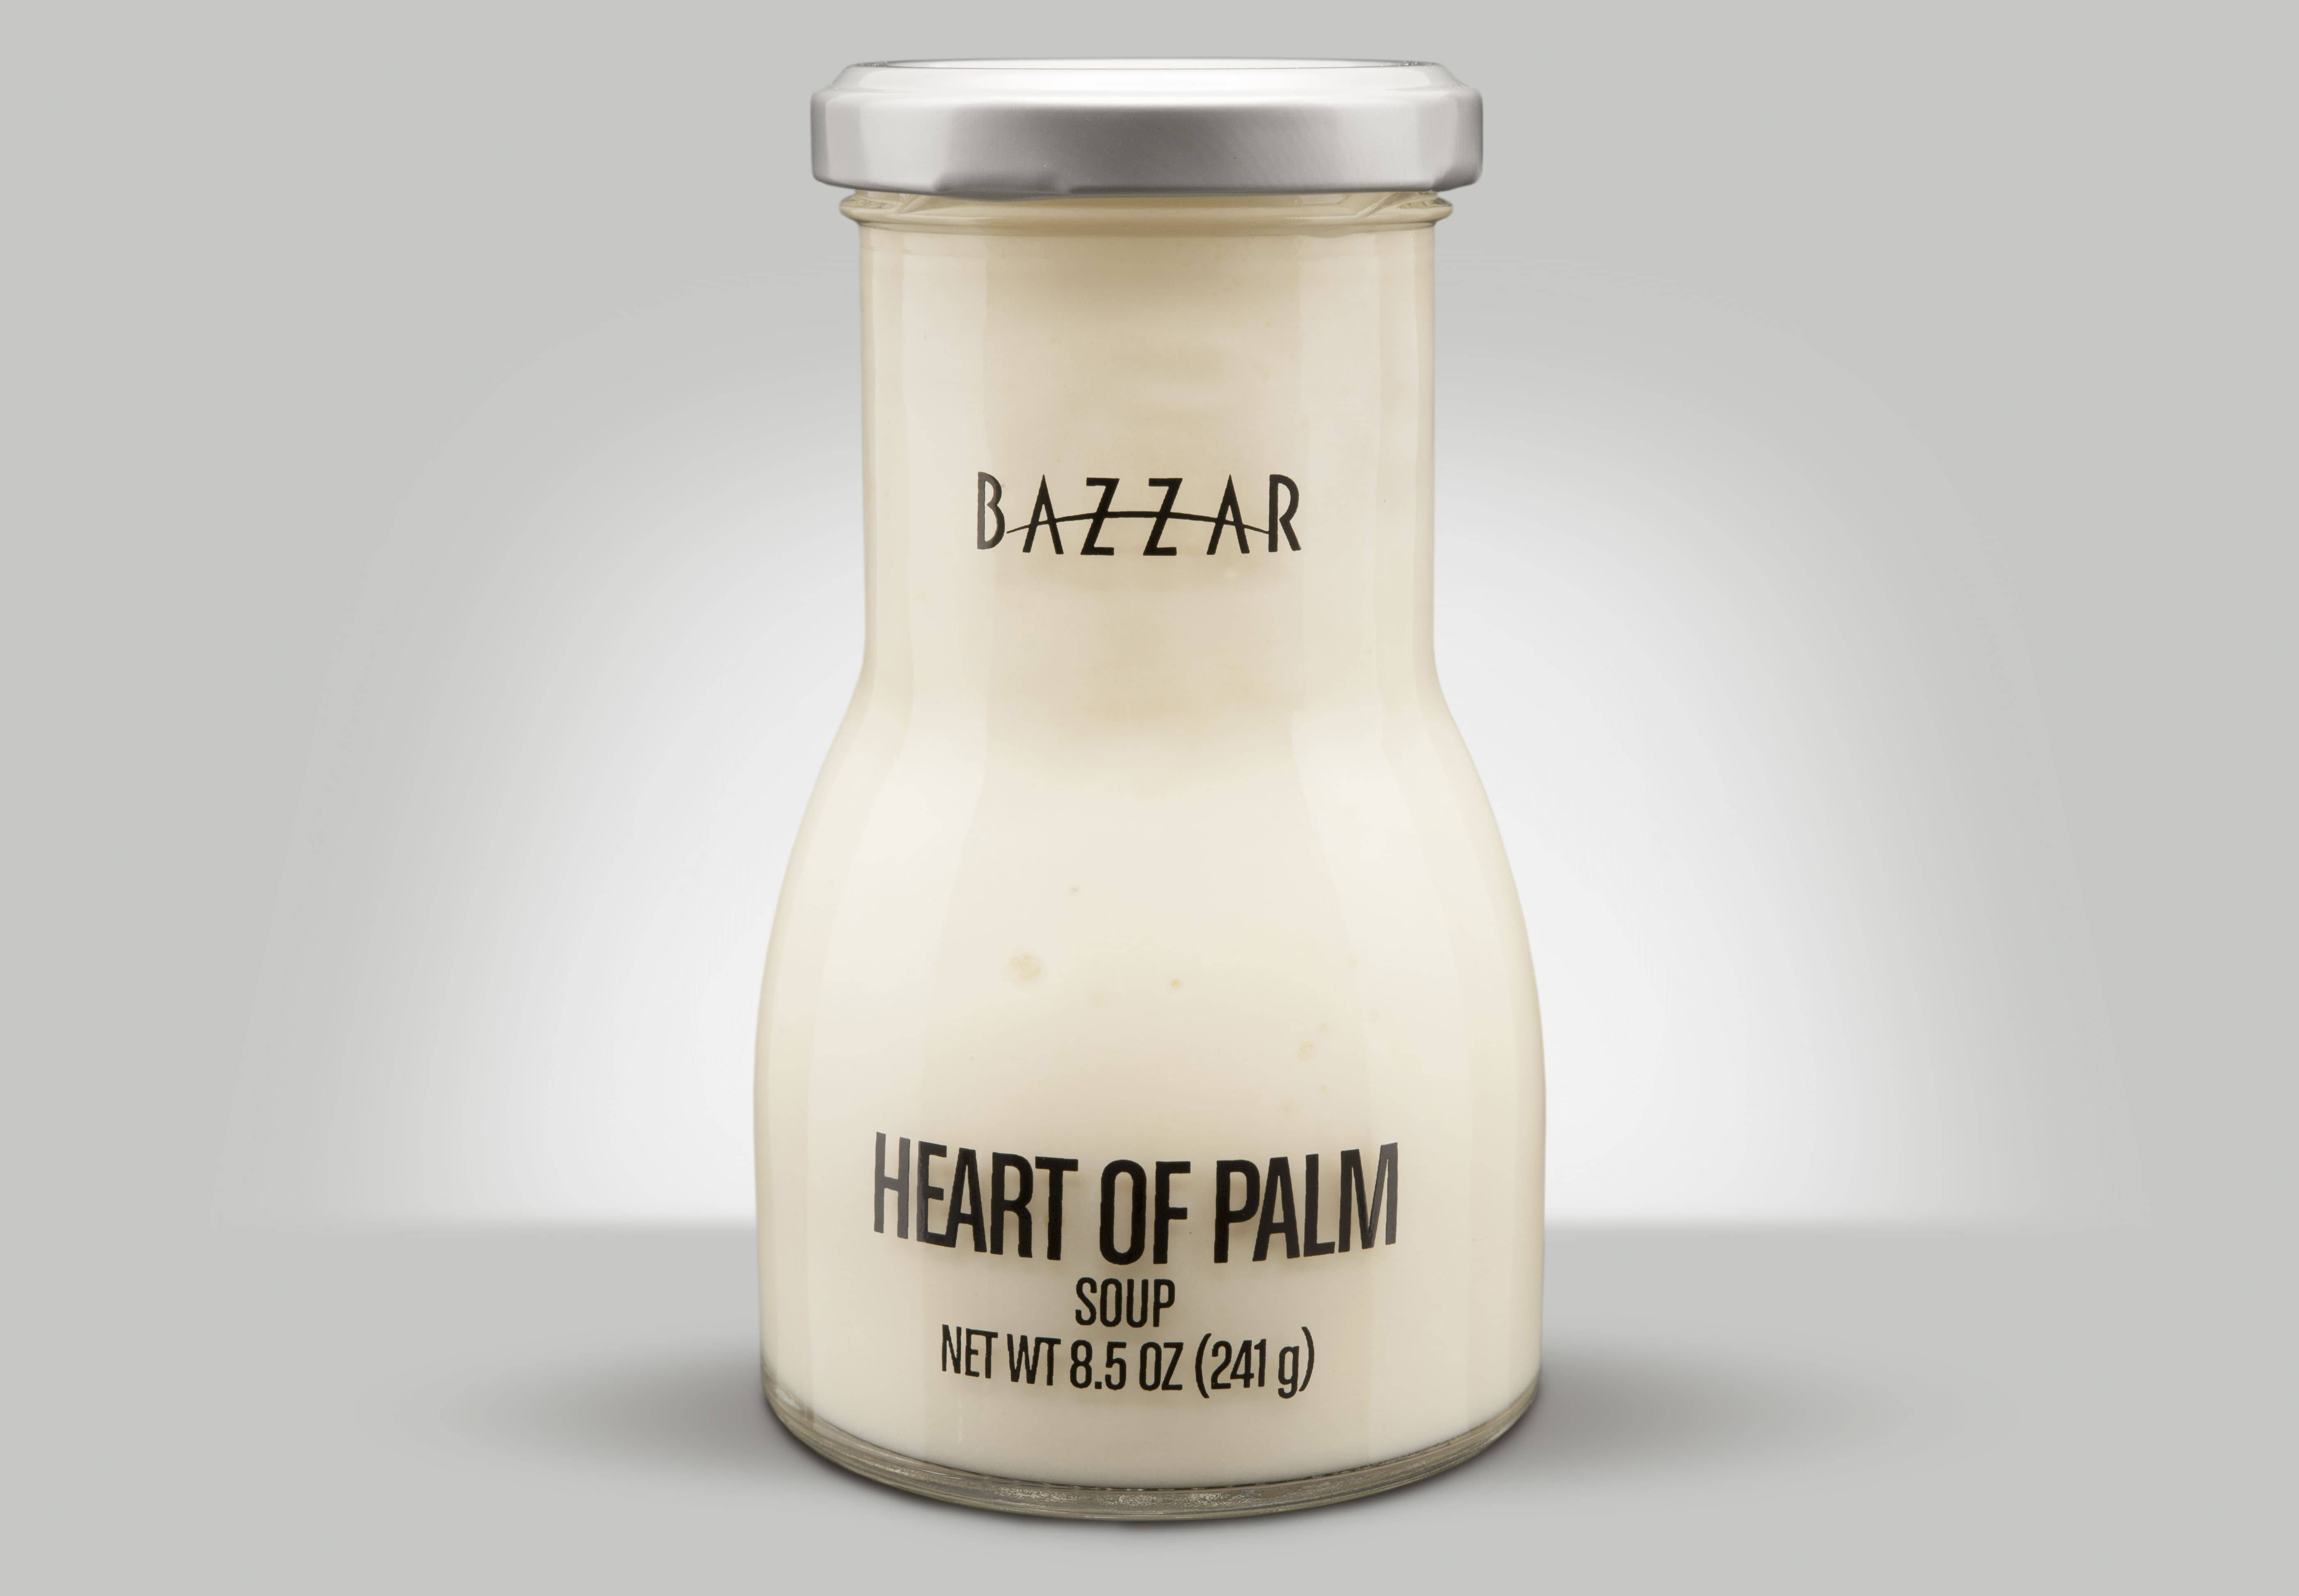 HEARTOFPALM-BAZZAR-FINAL